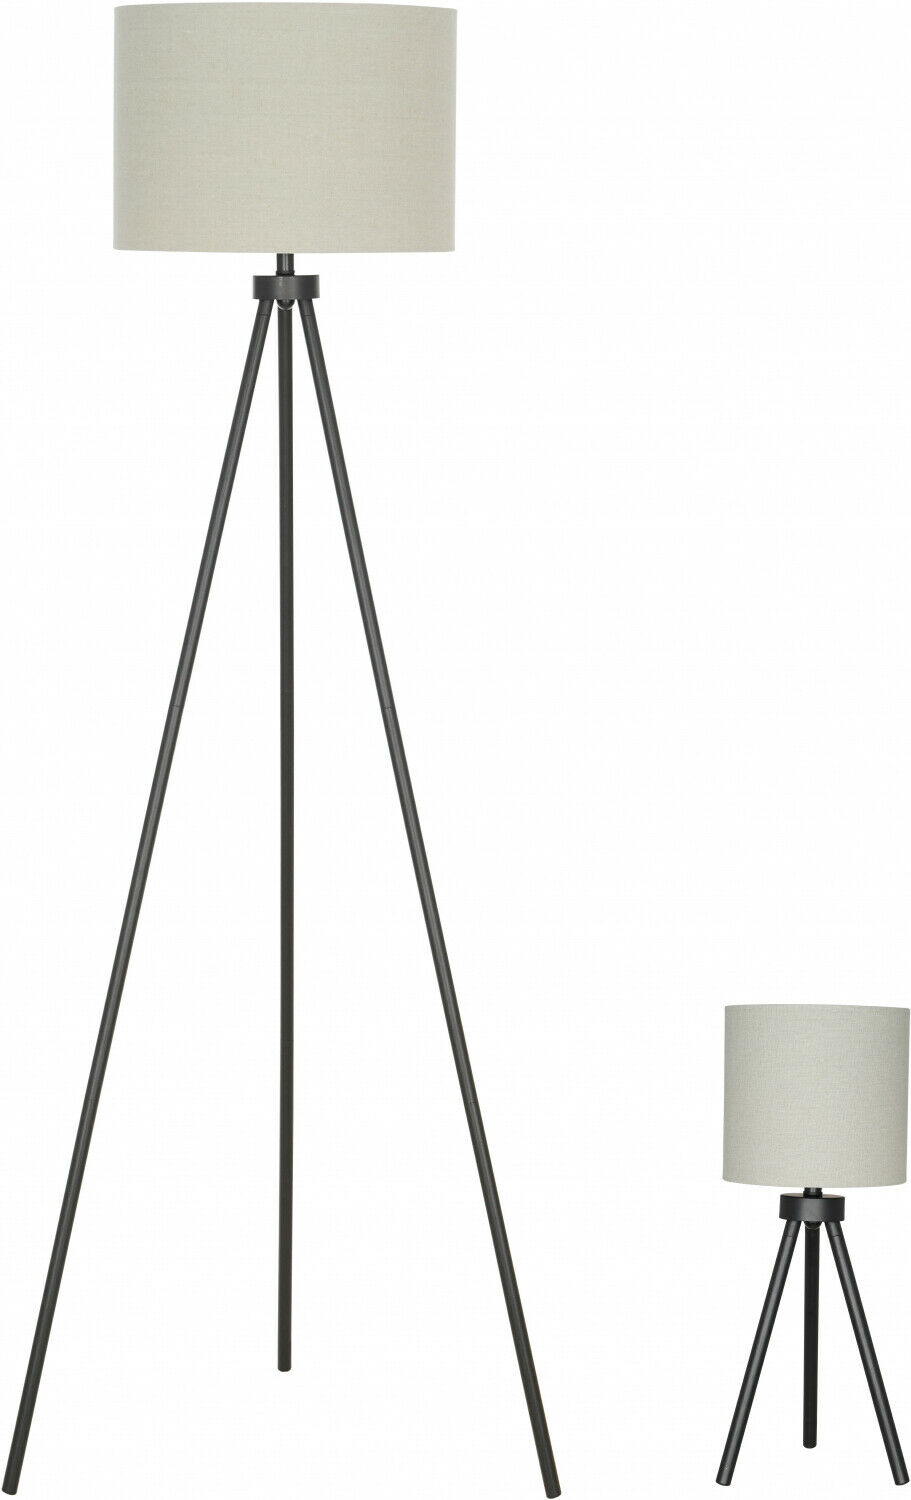 Modern Tripod Table And Floor Lamp Set Black Metal Finish Living Room Lamps